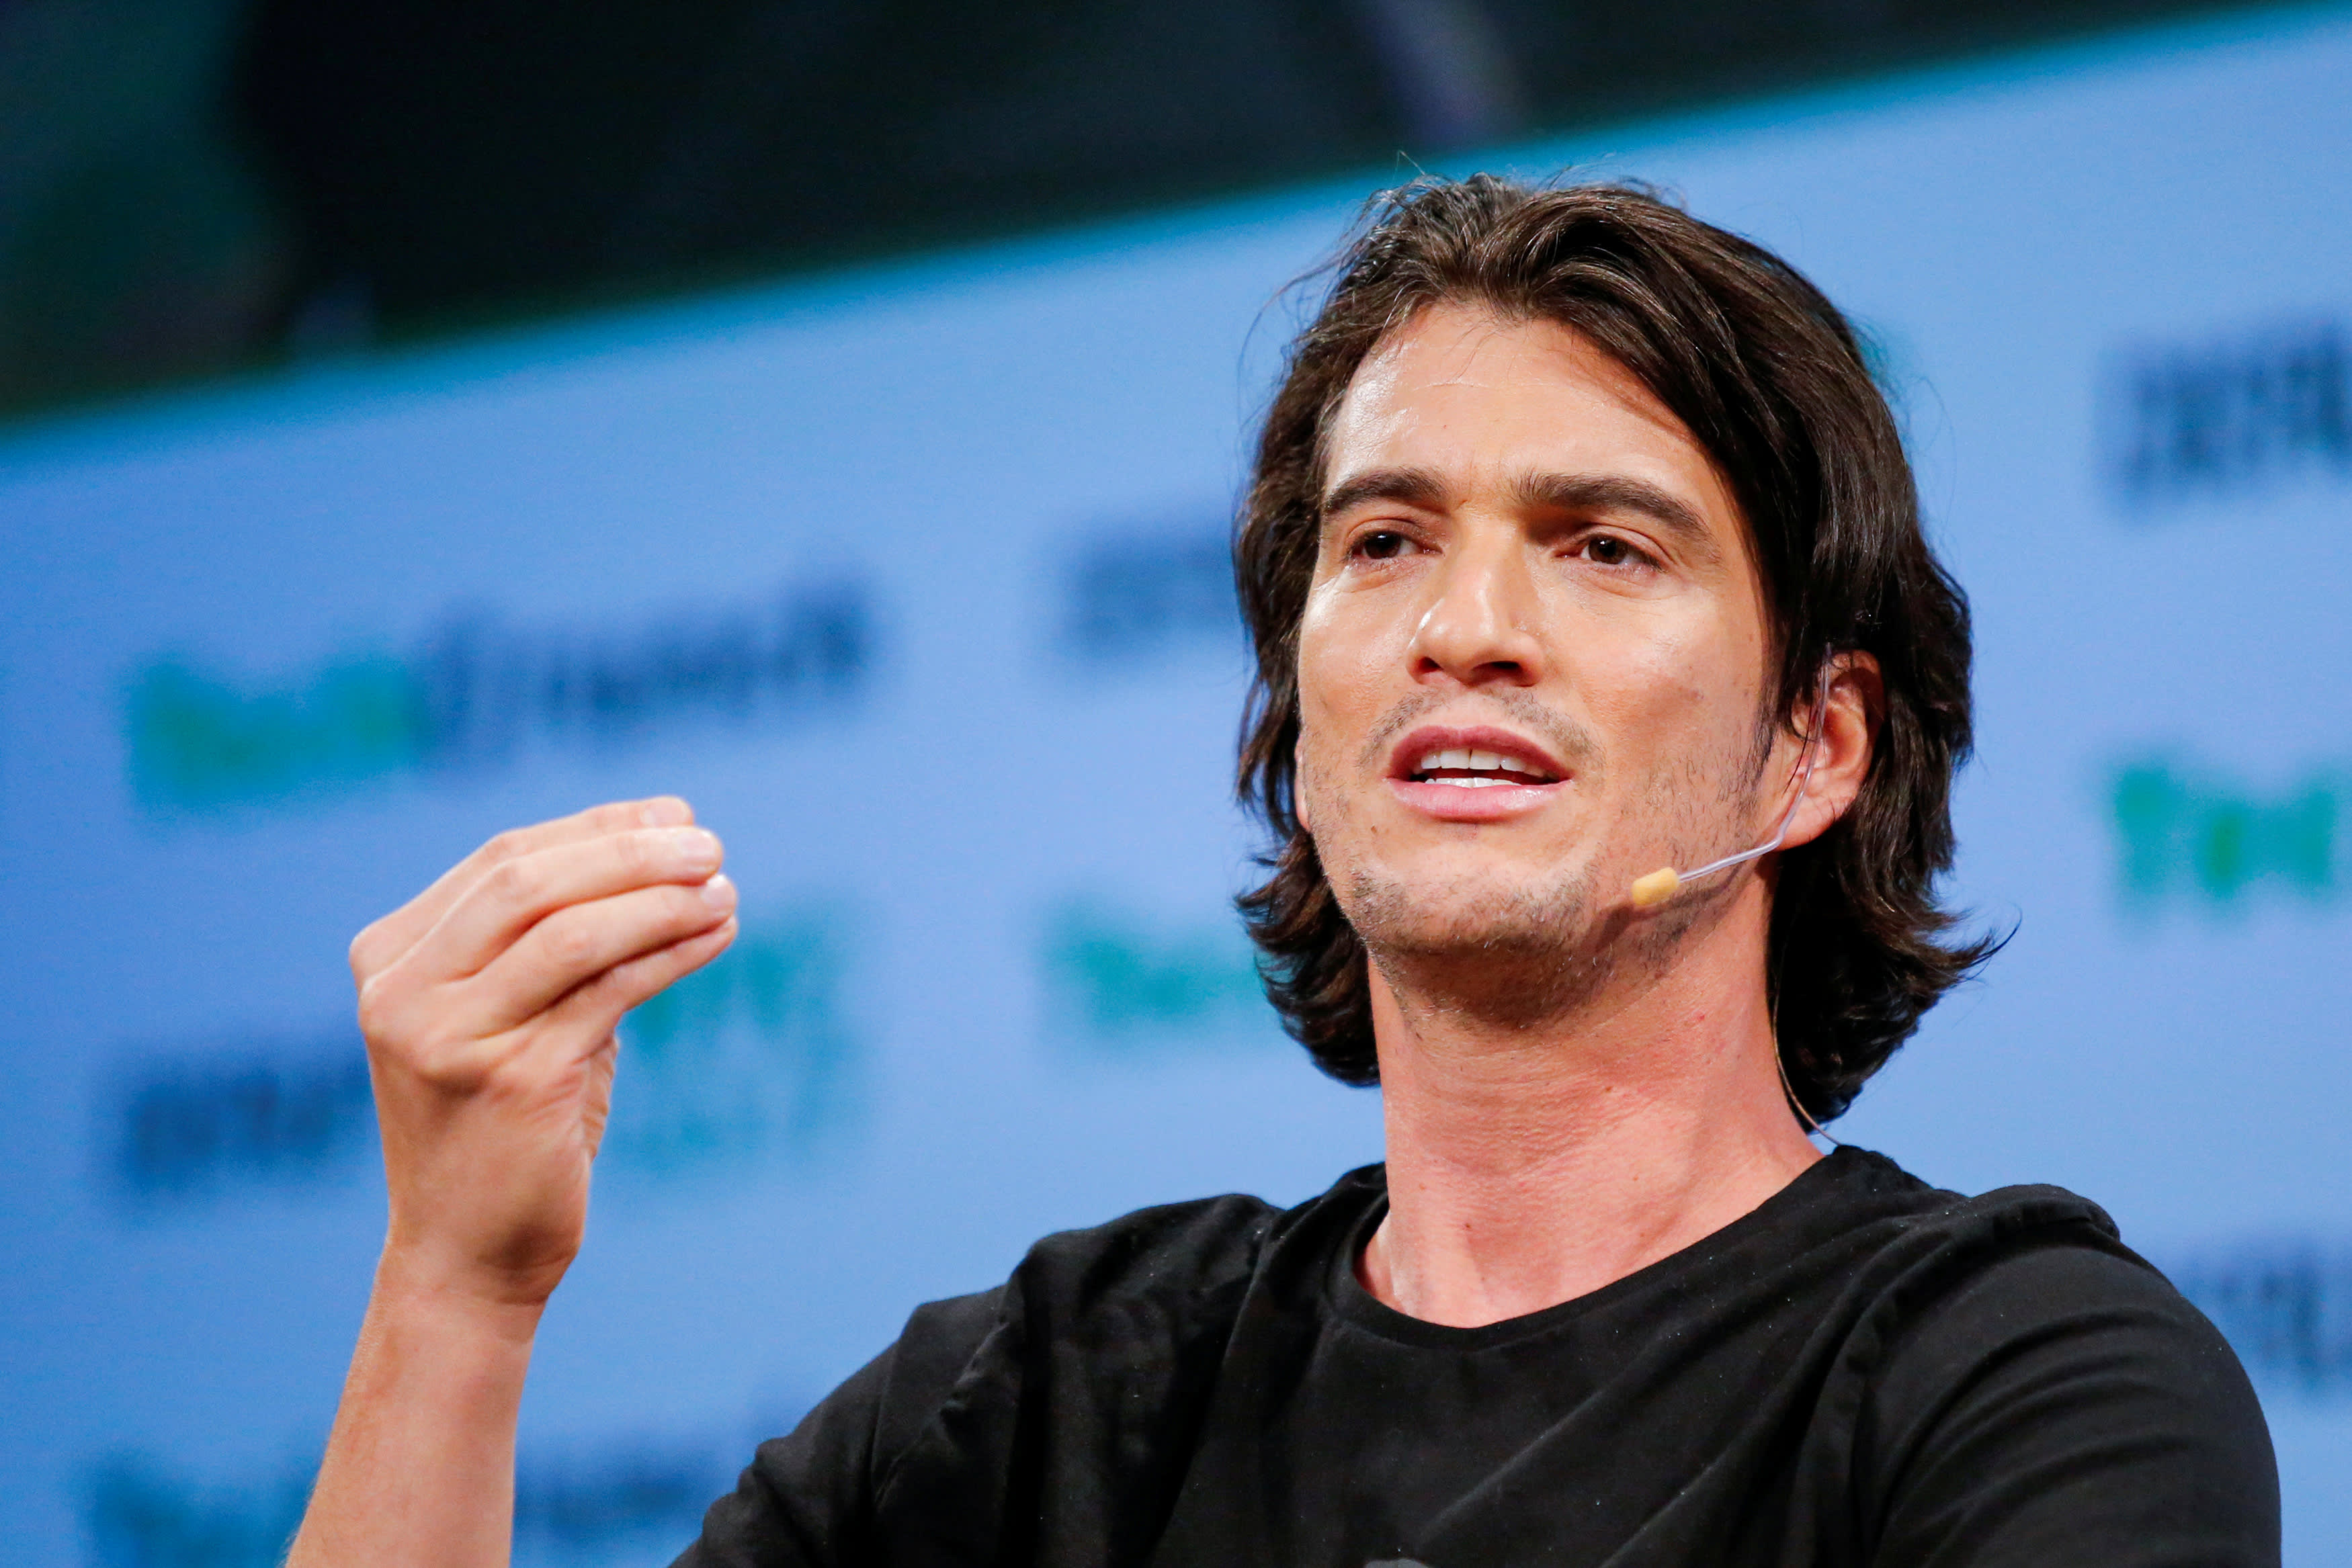 SoftBank would buy about 25% of Adam Neumann's stake in WeWork for $480 million under proposed settlement - CNBC